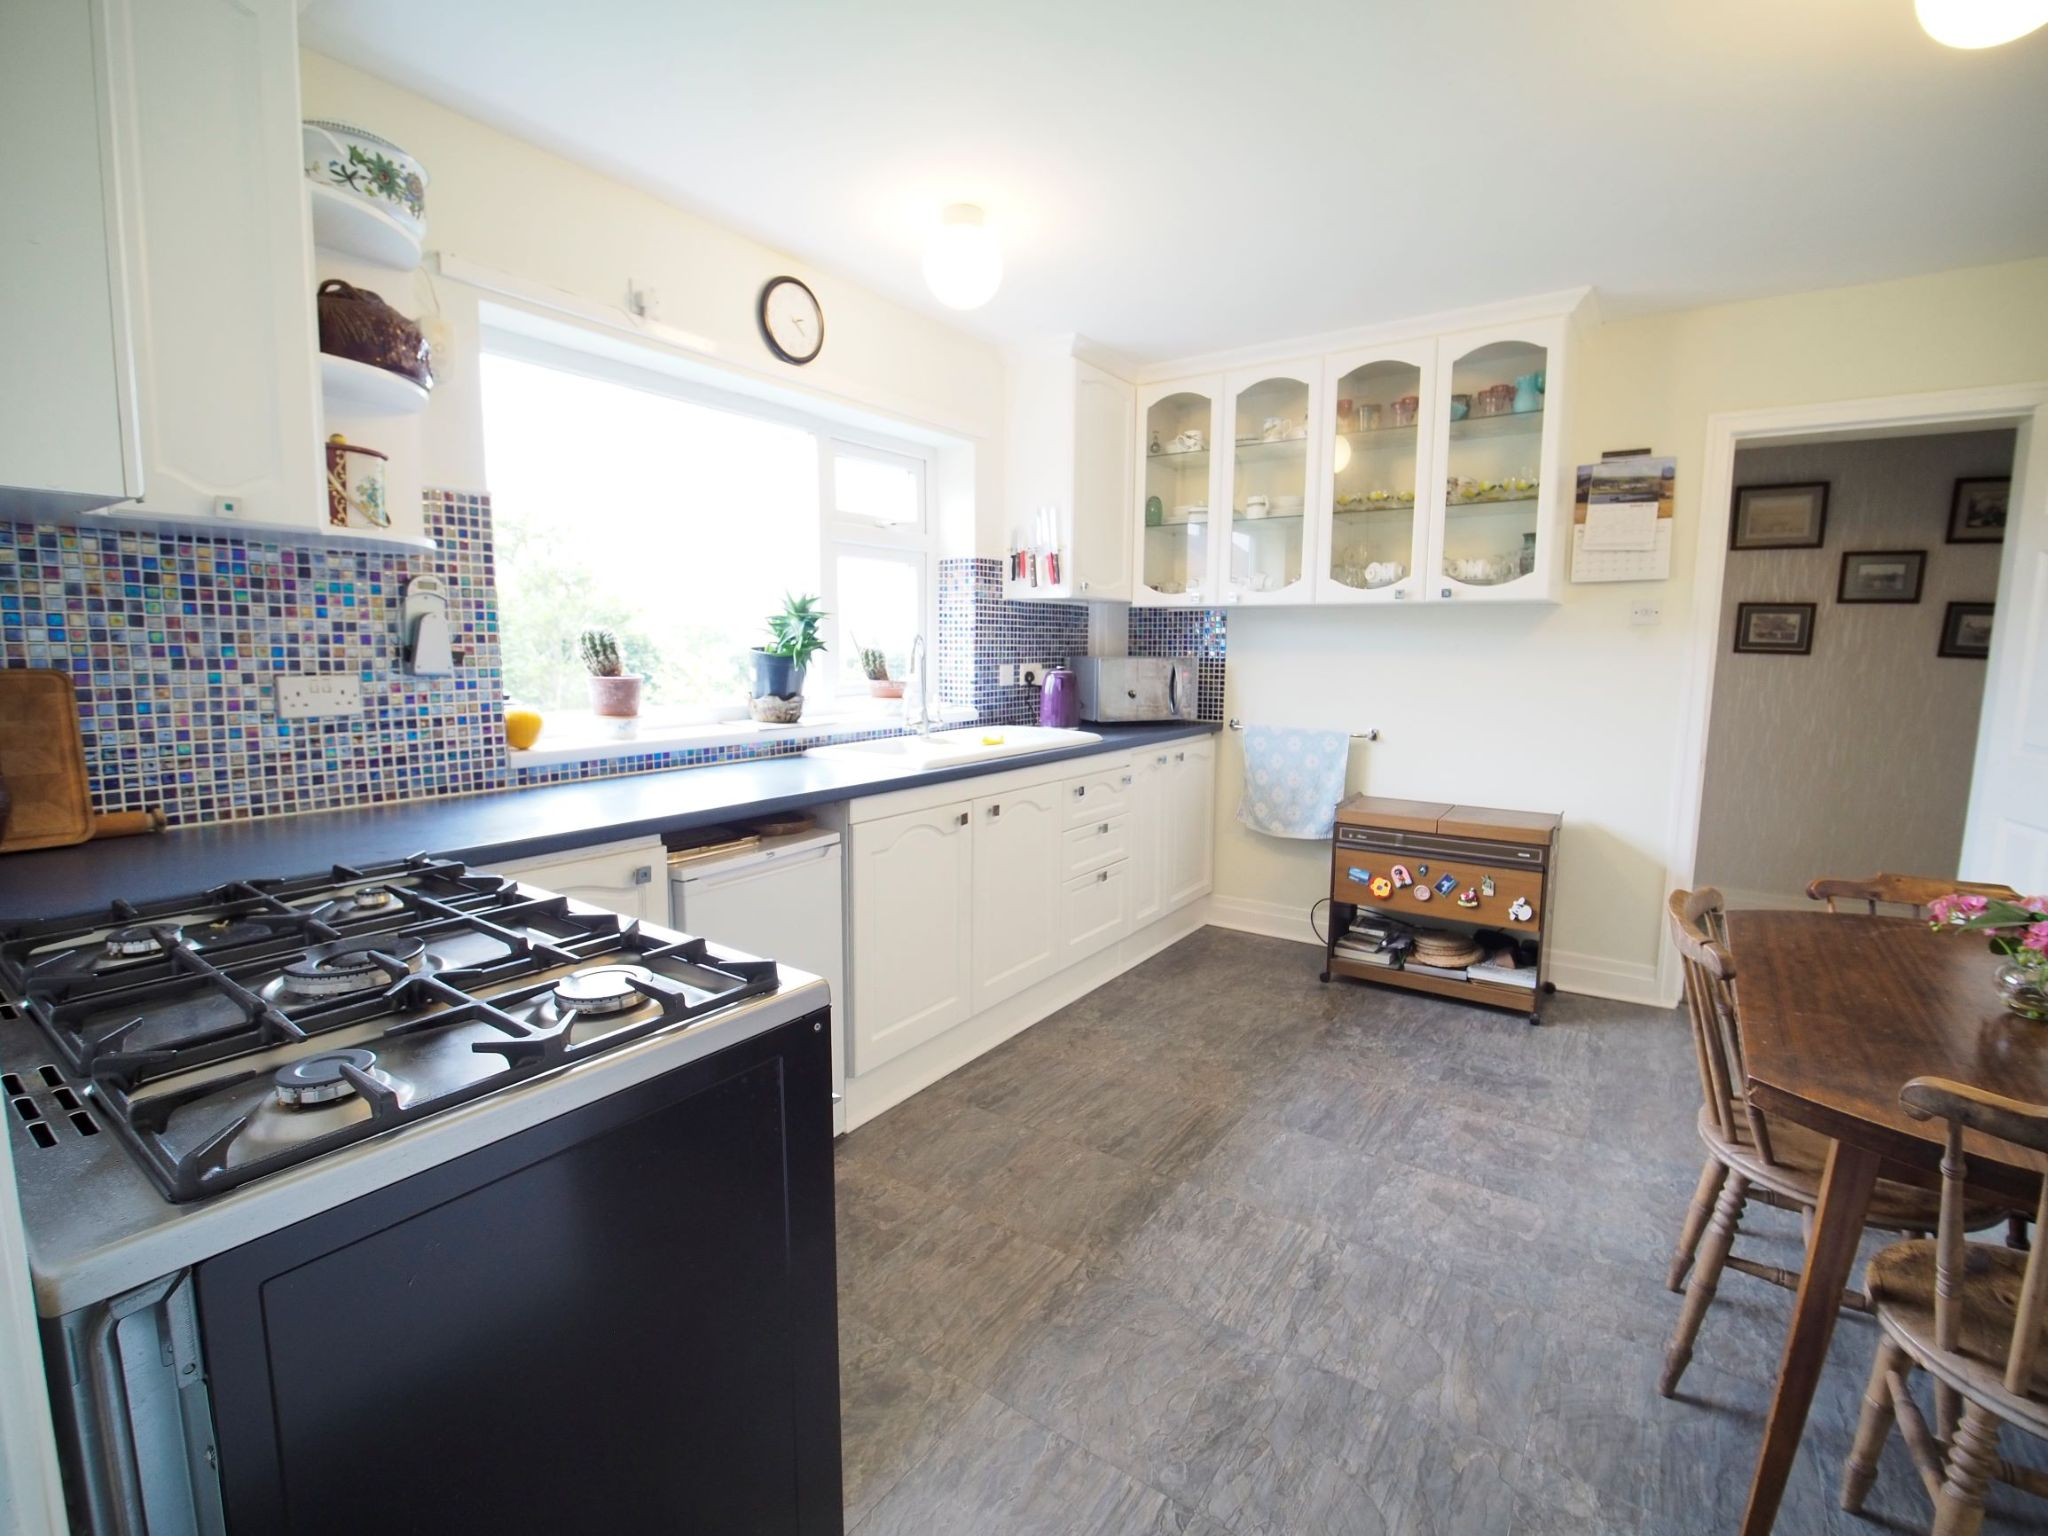 4 bedroom detached house For Sale in Willington - Kitchen.